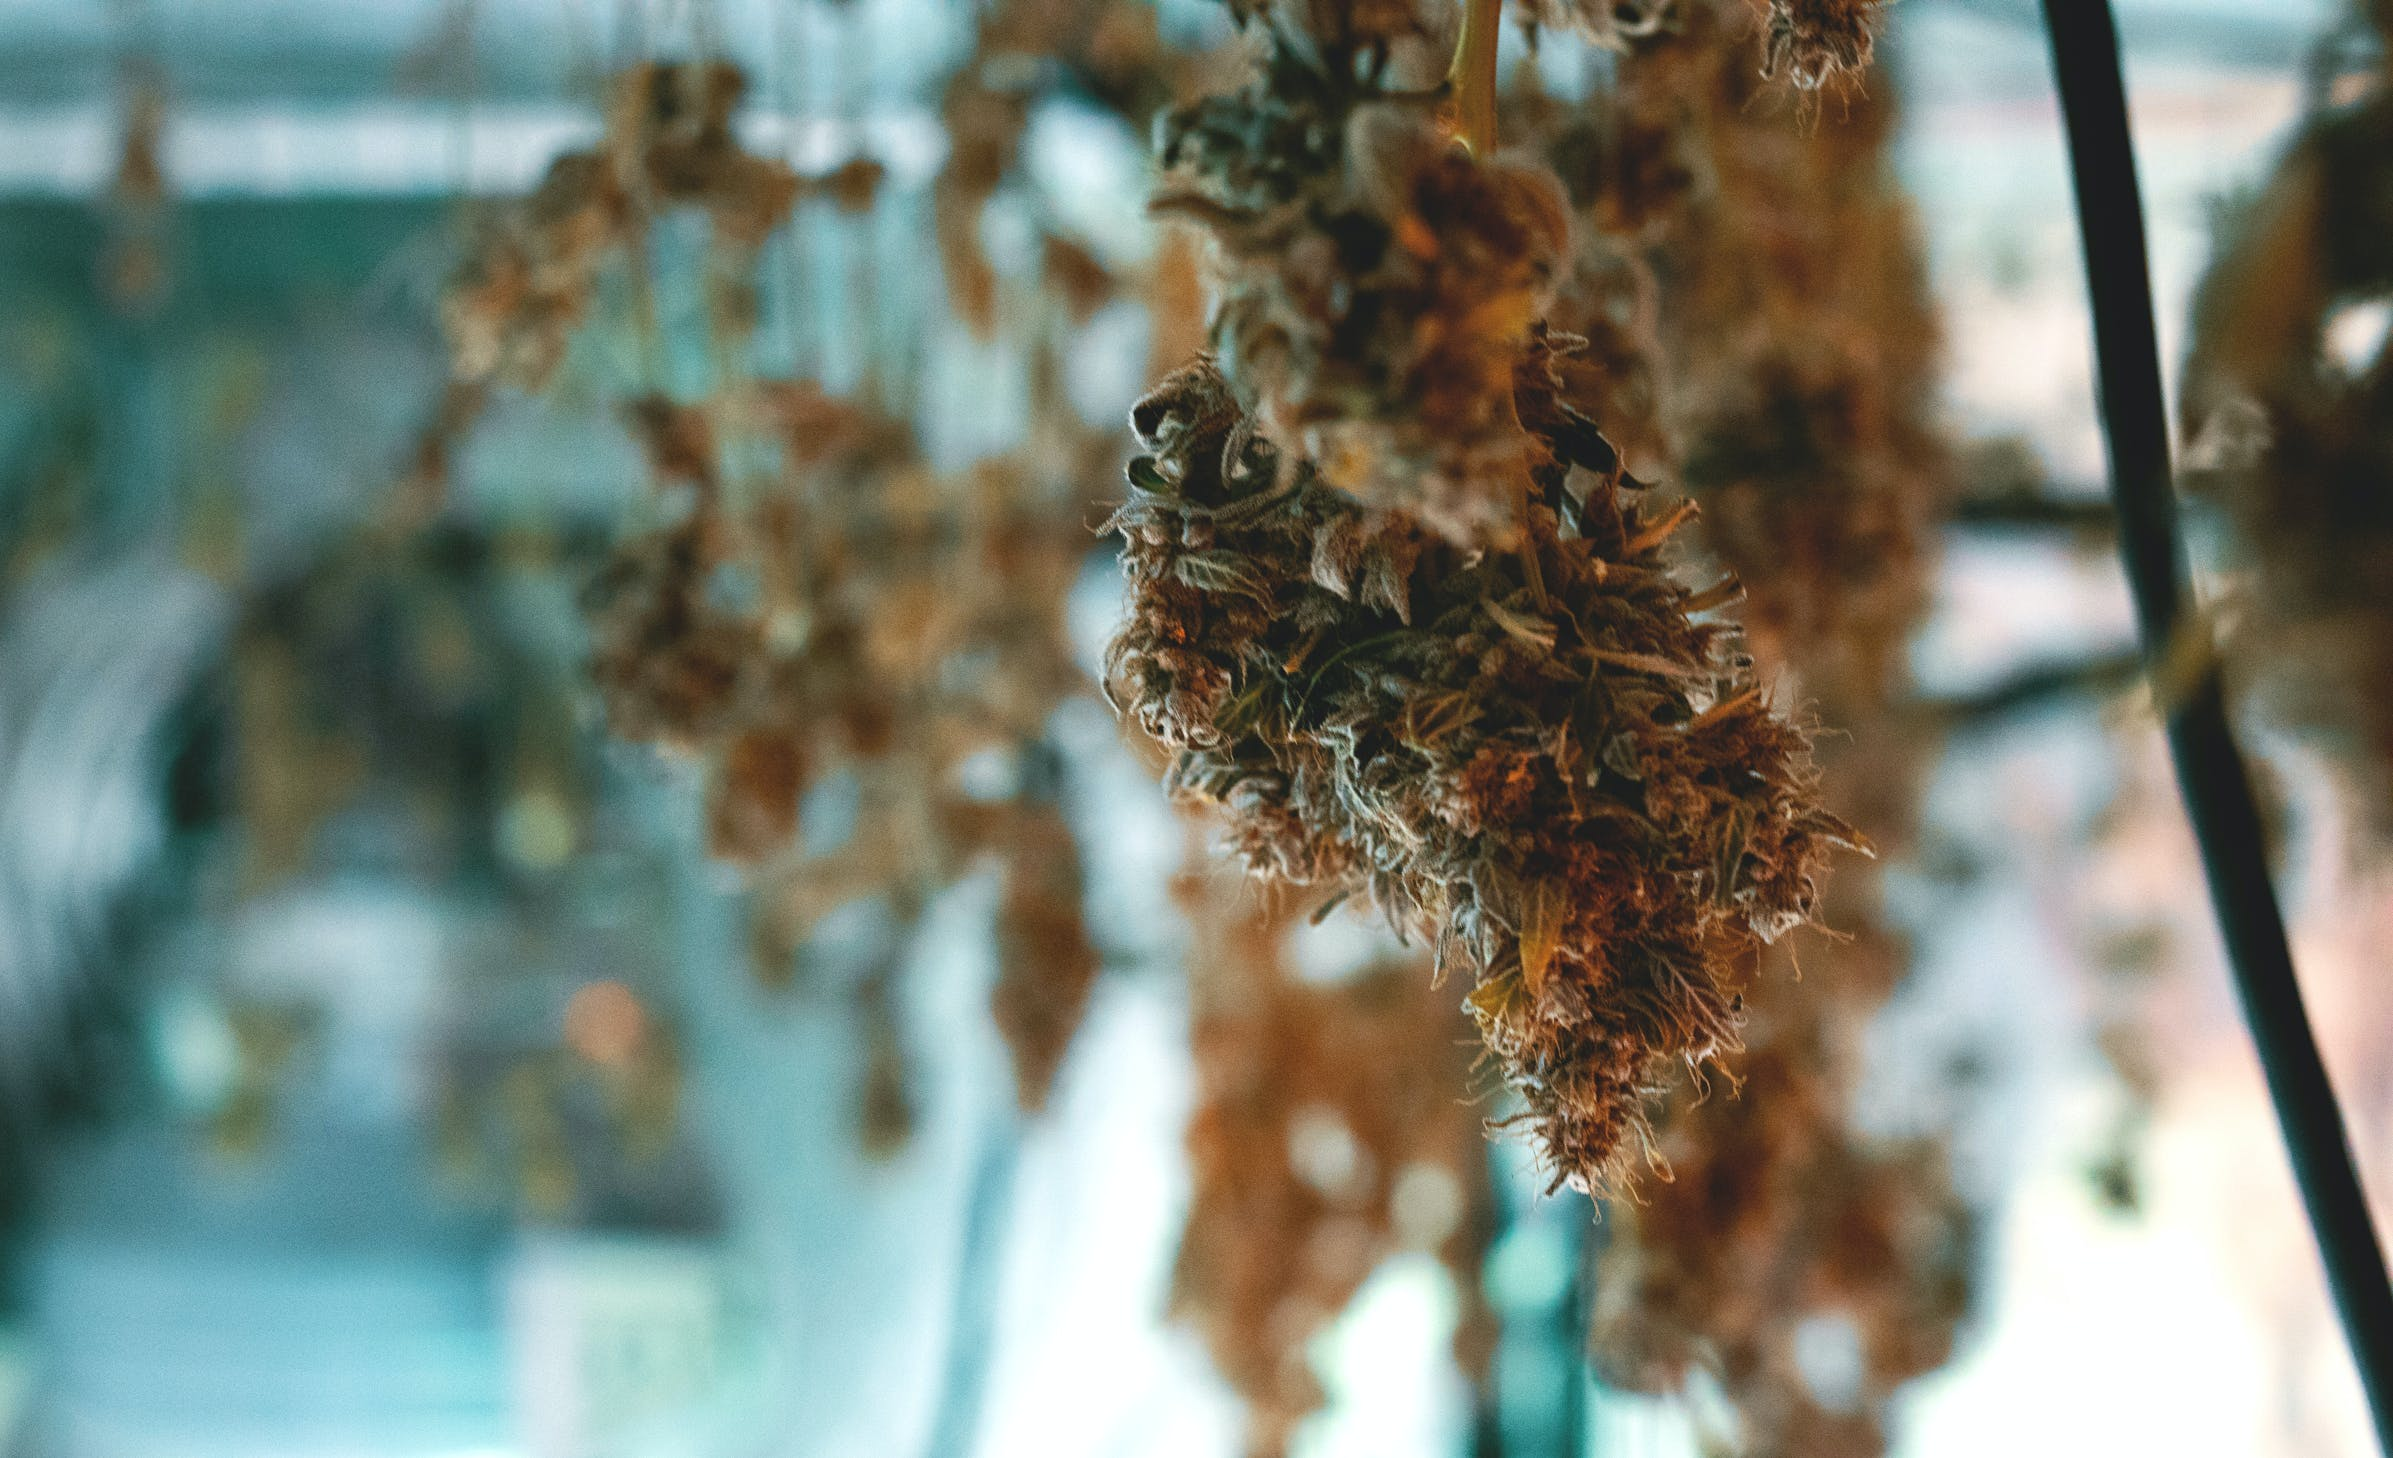 Cannabis hangs upside down drying, which is one of our tips in the how to dry cannabis guide